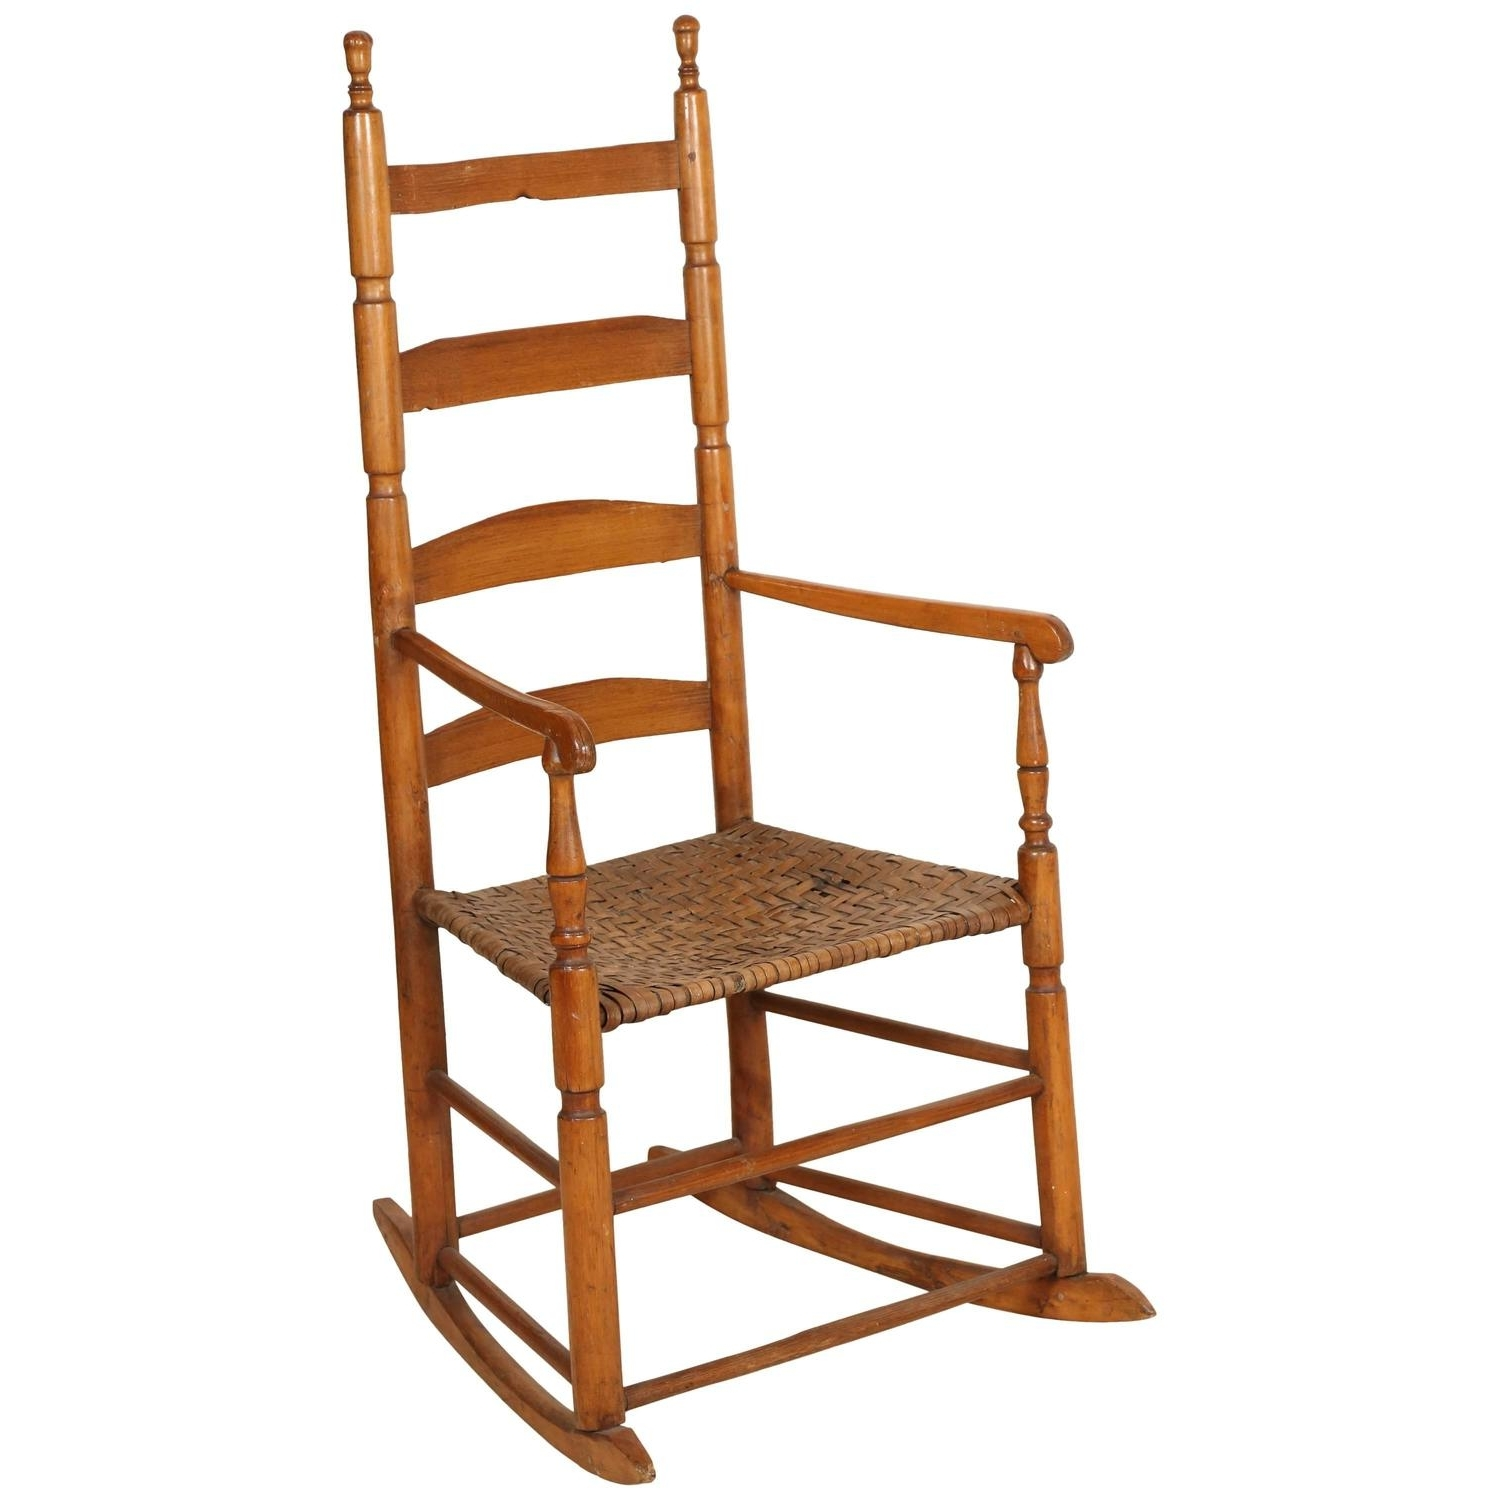 Ladder High Back Rocking Chair For Sale At 1Stdibs Within Well Known High Back Rocking Chairs (View 10 of 15)